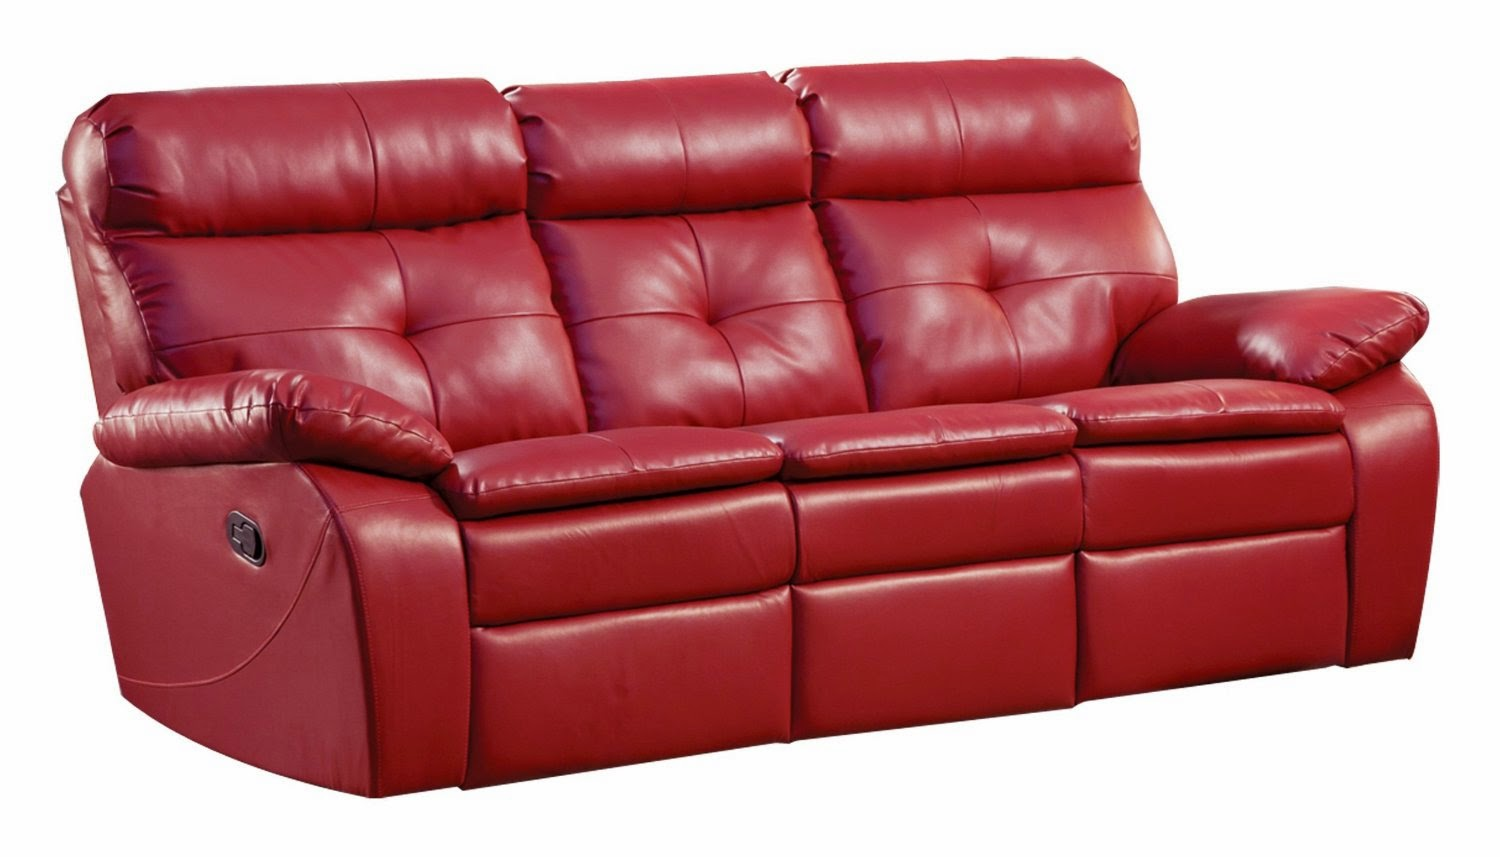 The best reclining sofa reviews red leather reclining sofa and loveseat Leather sofa and loveseat recliner